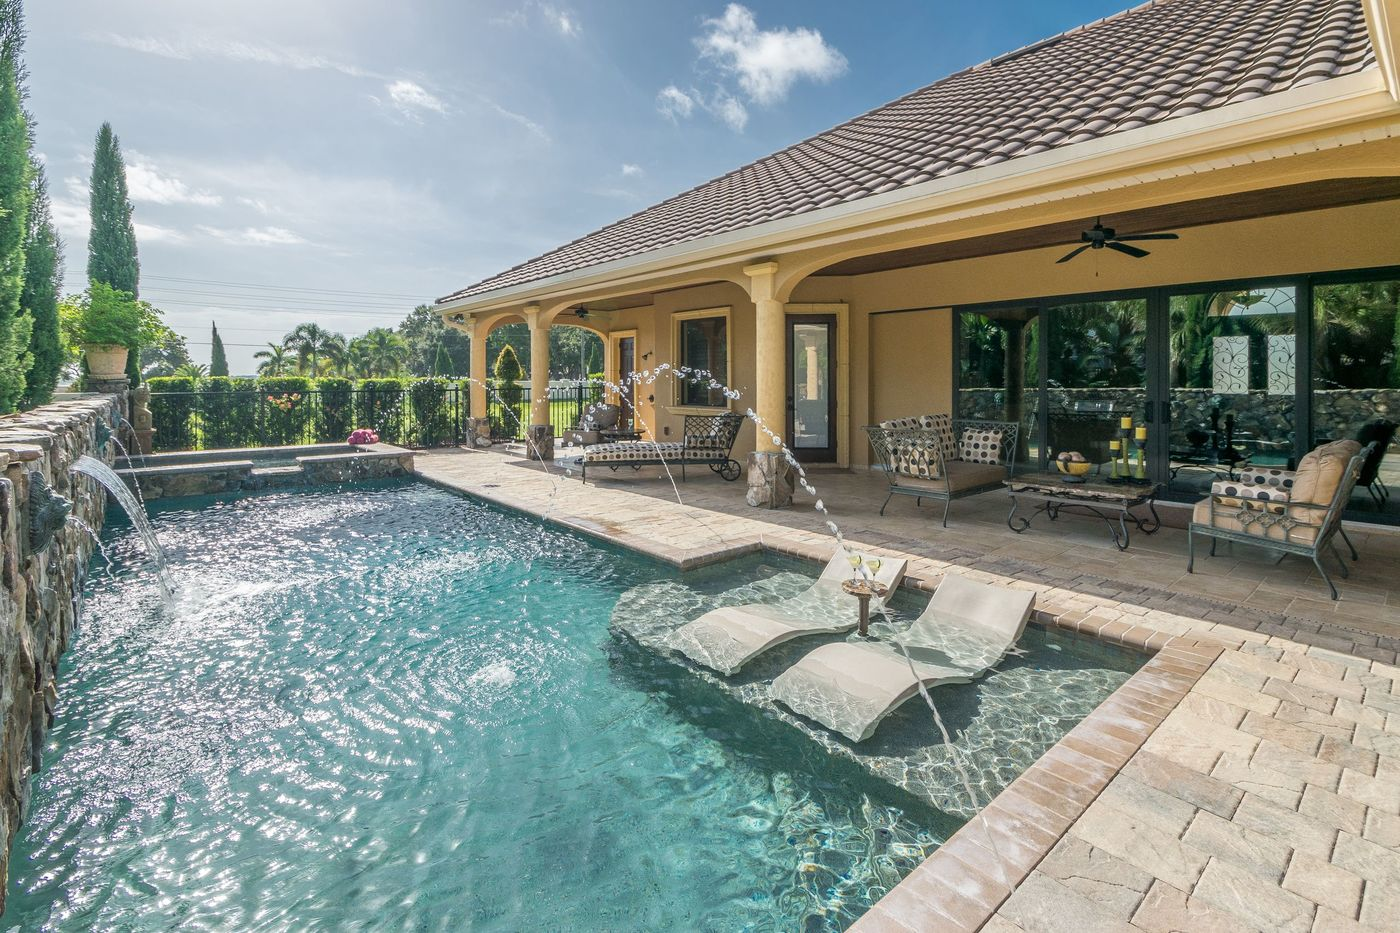 Pool Homes For Sale The Stones Real Estate Firm